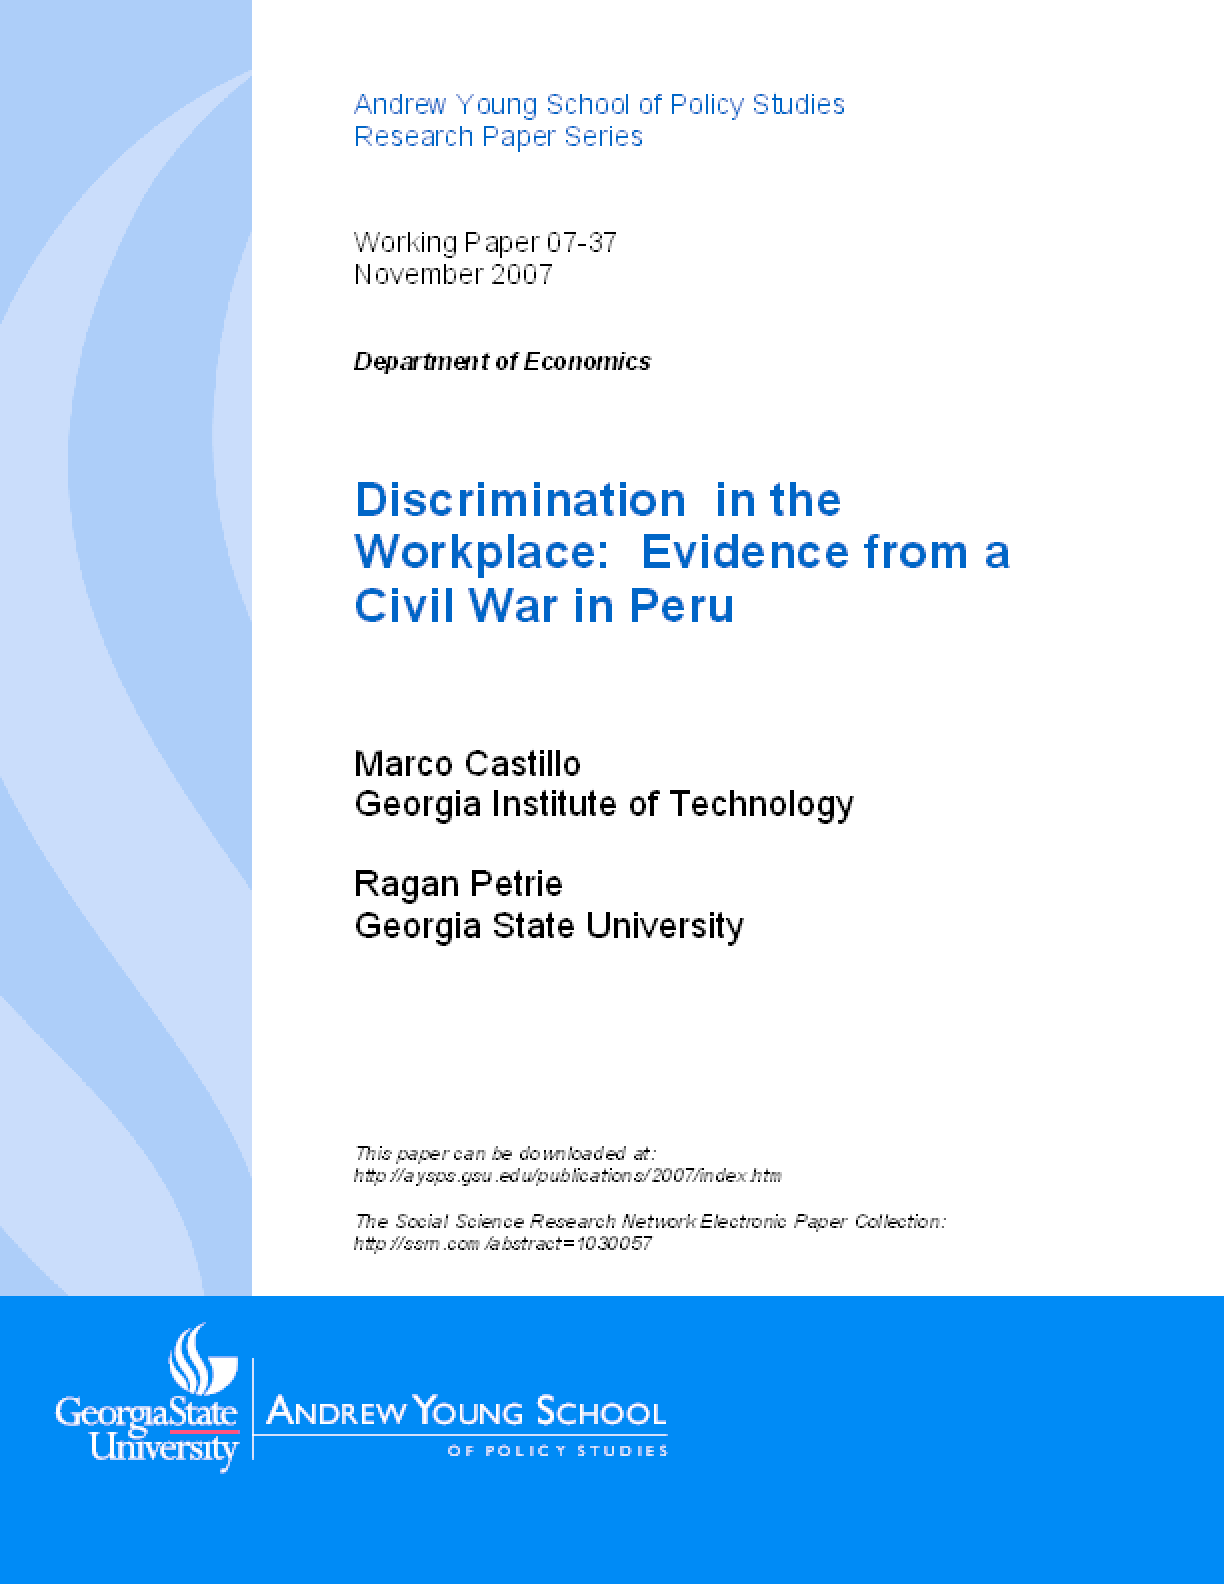 Discrimination in the Workplace: Evidence from a Civil War in Peru